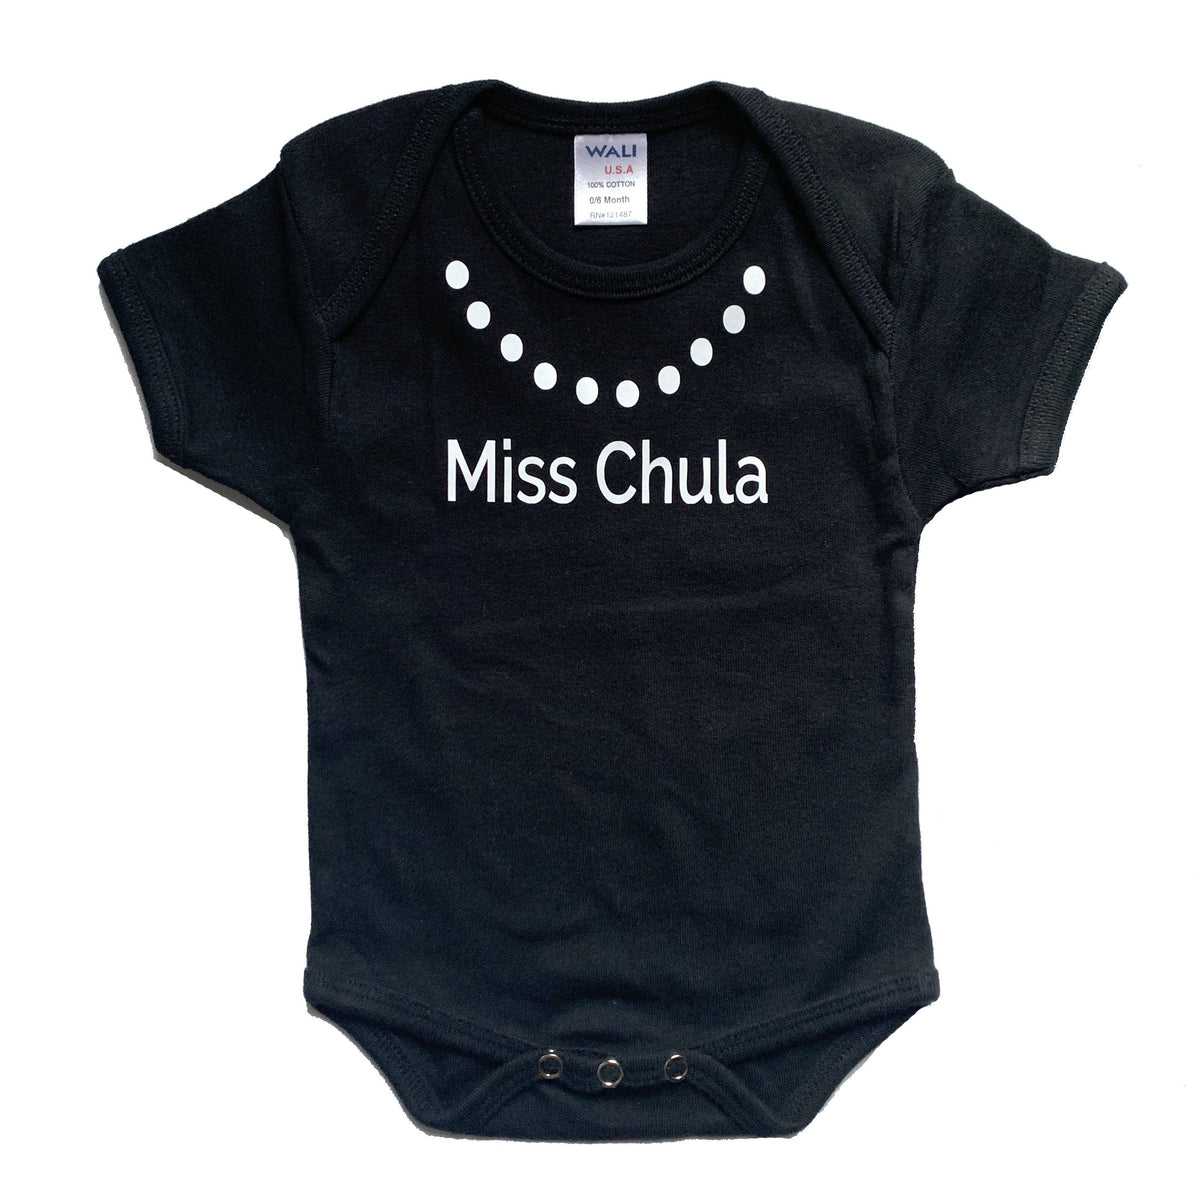 Mi LegaSi Miss Chula Baby Onesie Black and White - Mi LegaSi